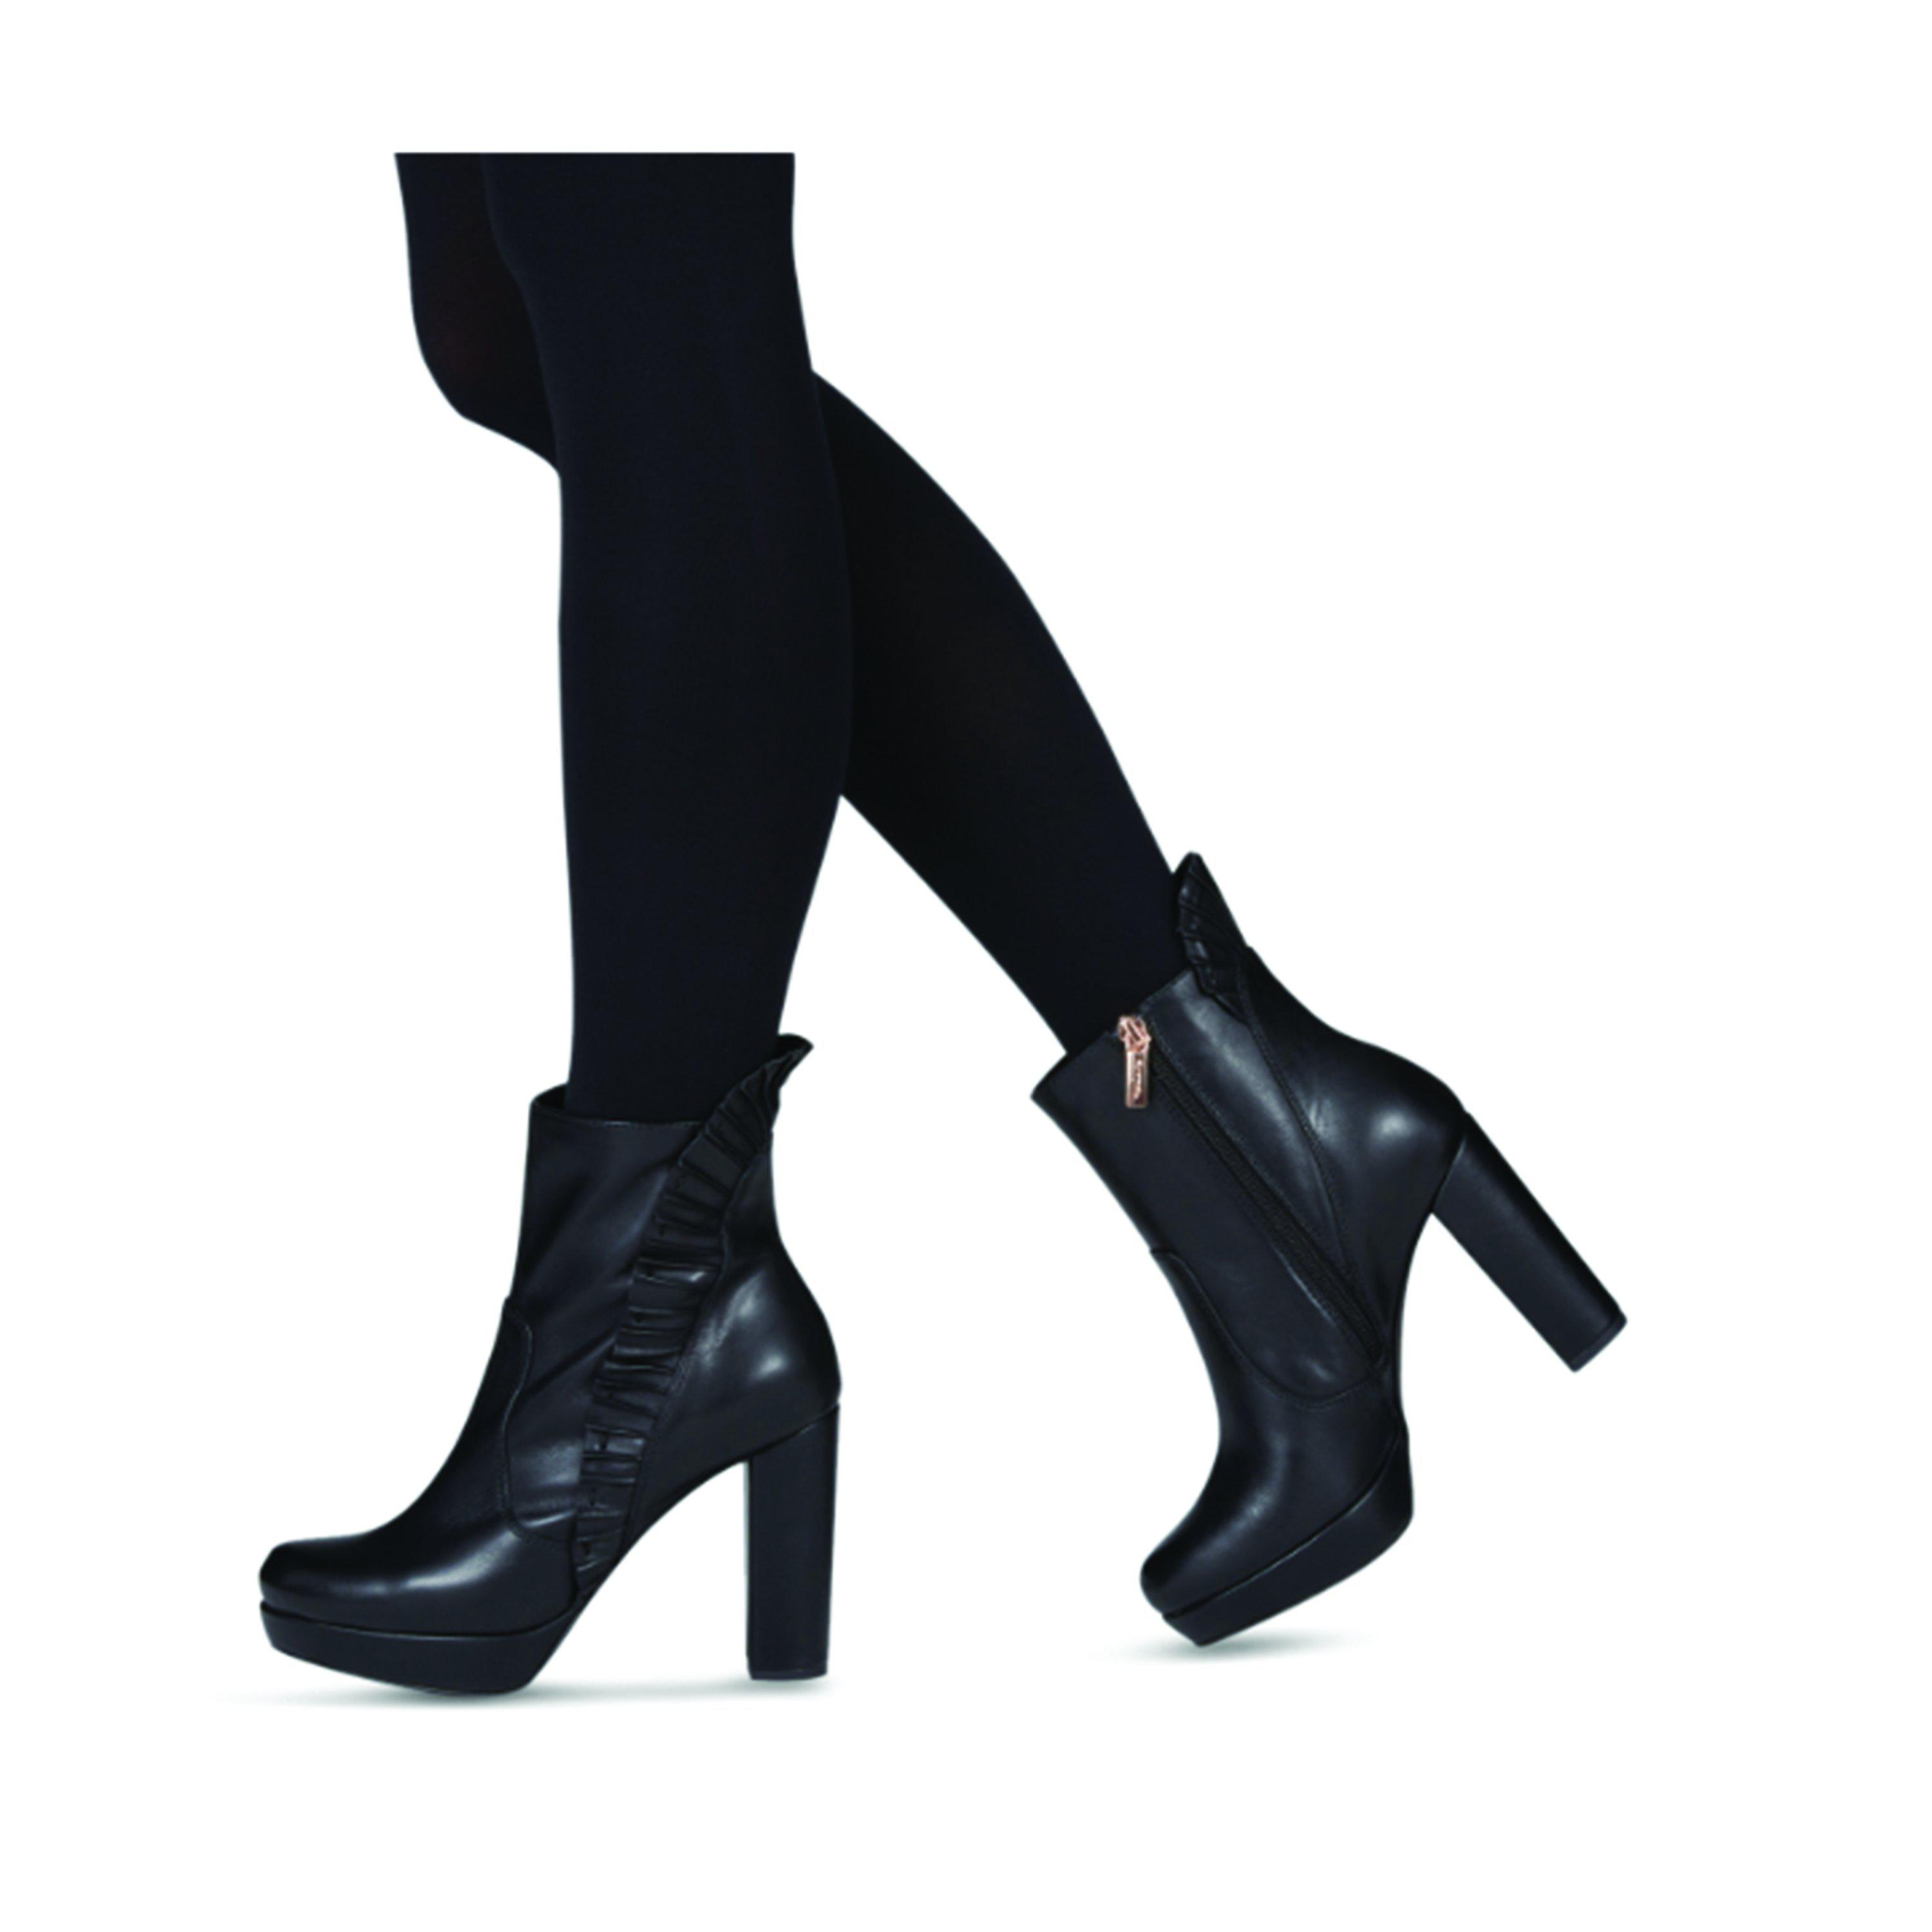 a790e68cb08 Tamaris Black Leather Platform Ankle Boot in Black - Lyst